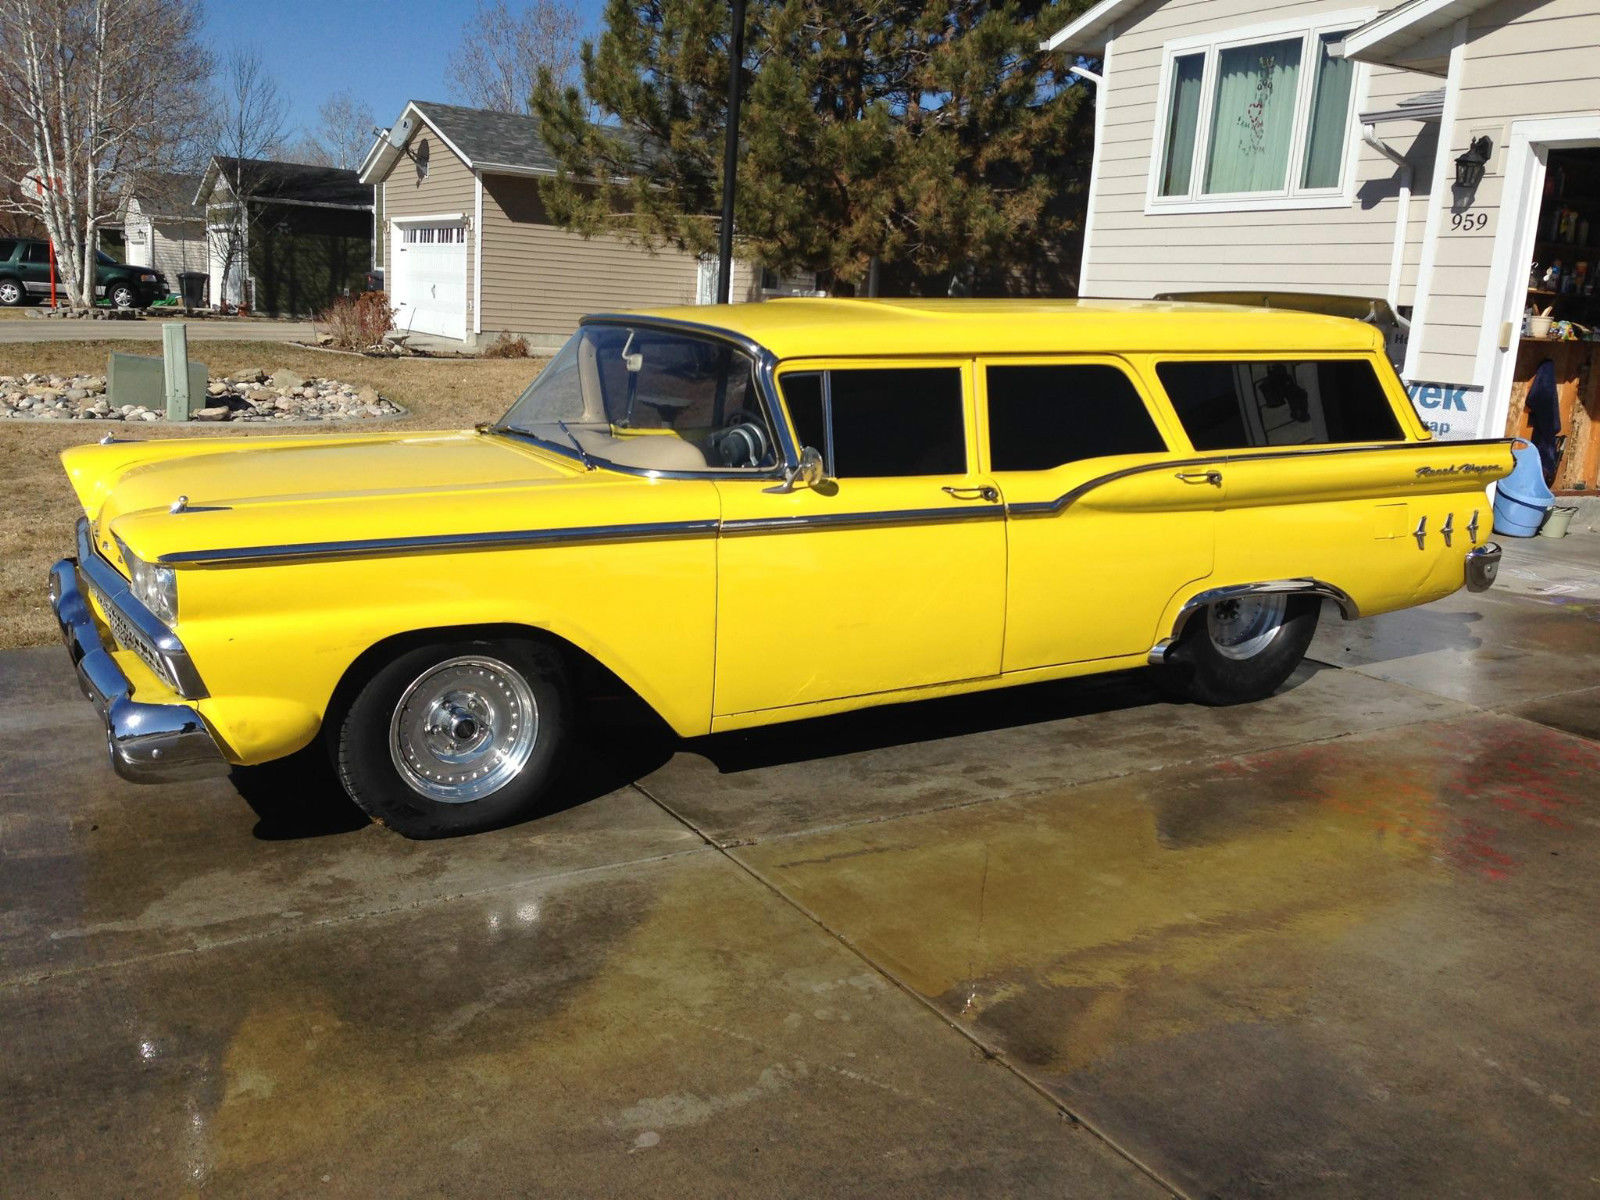 Large Barge: This 1959 Ford Wagon Has A Twin Turbo 557ci Big Block Ford And Big Meats Out Back